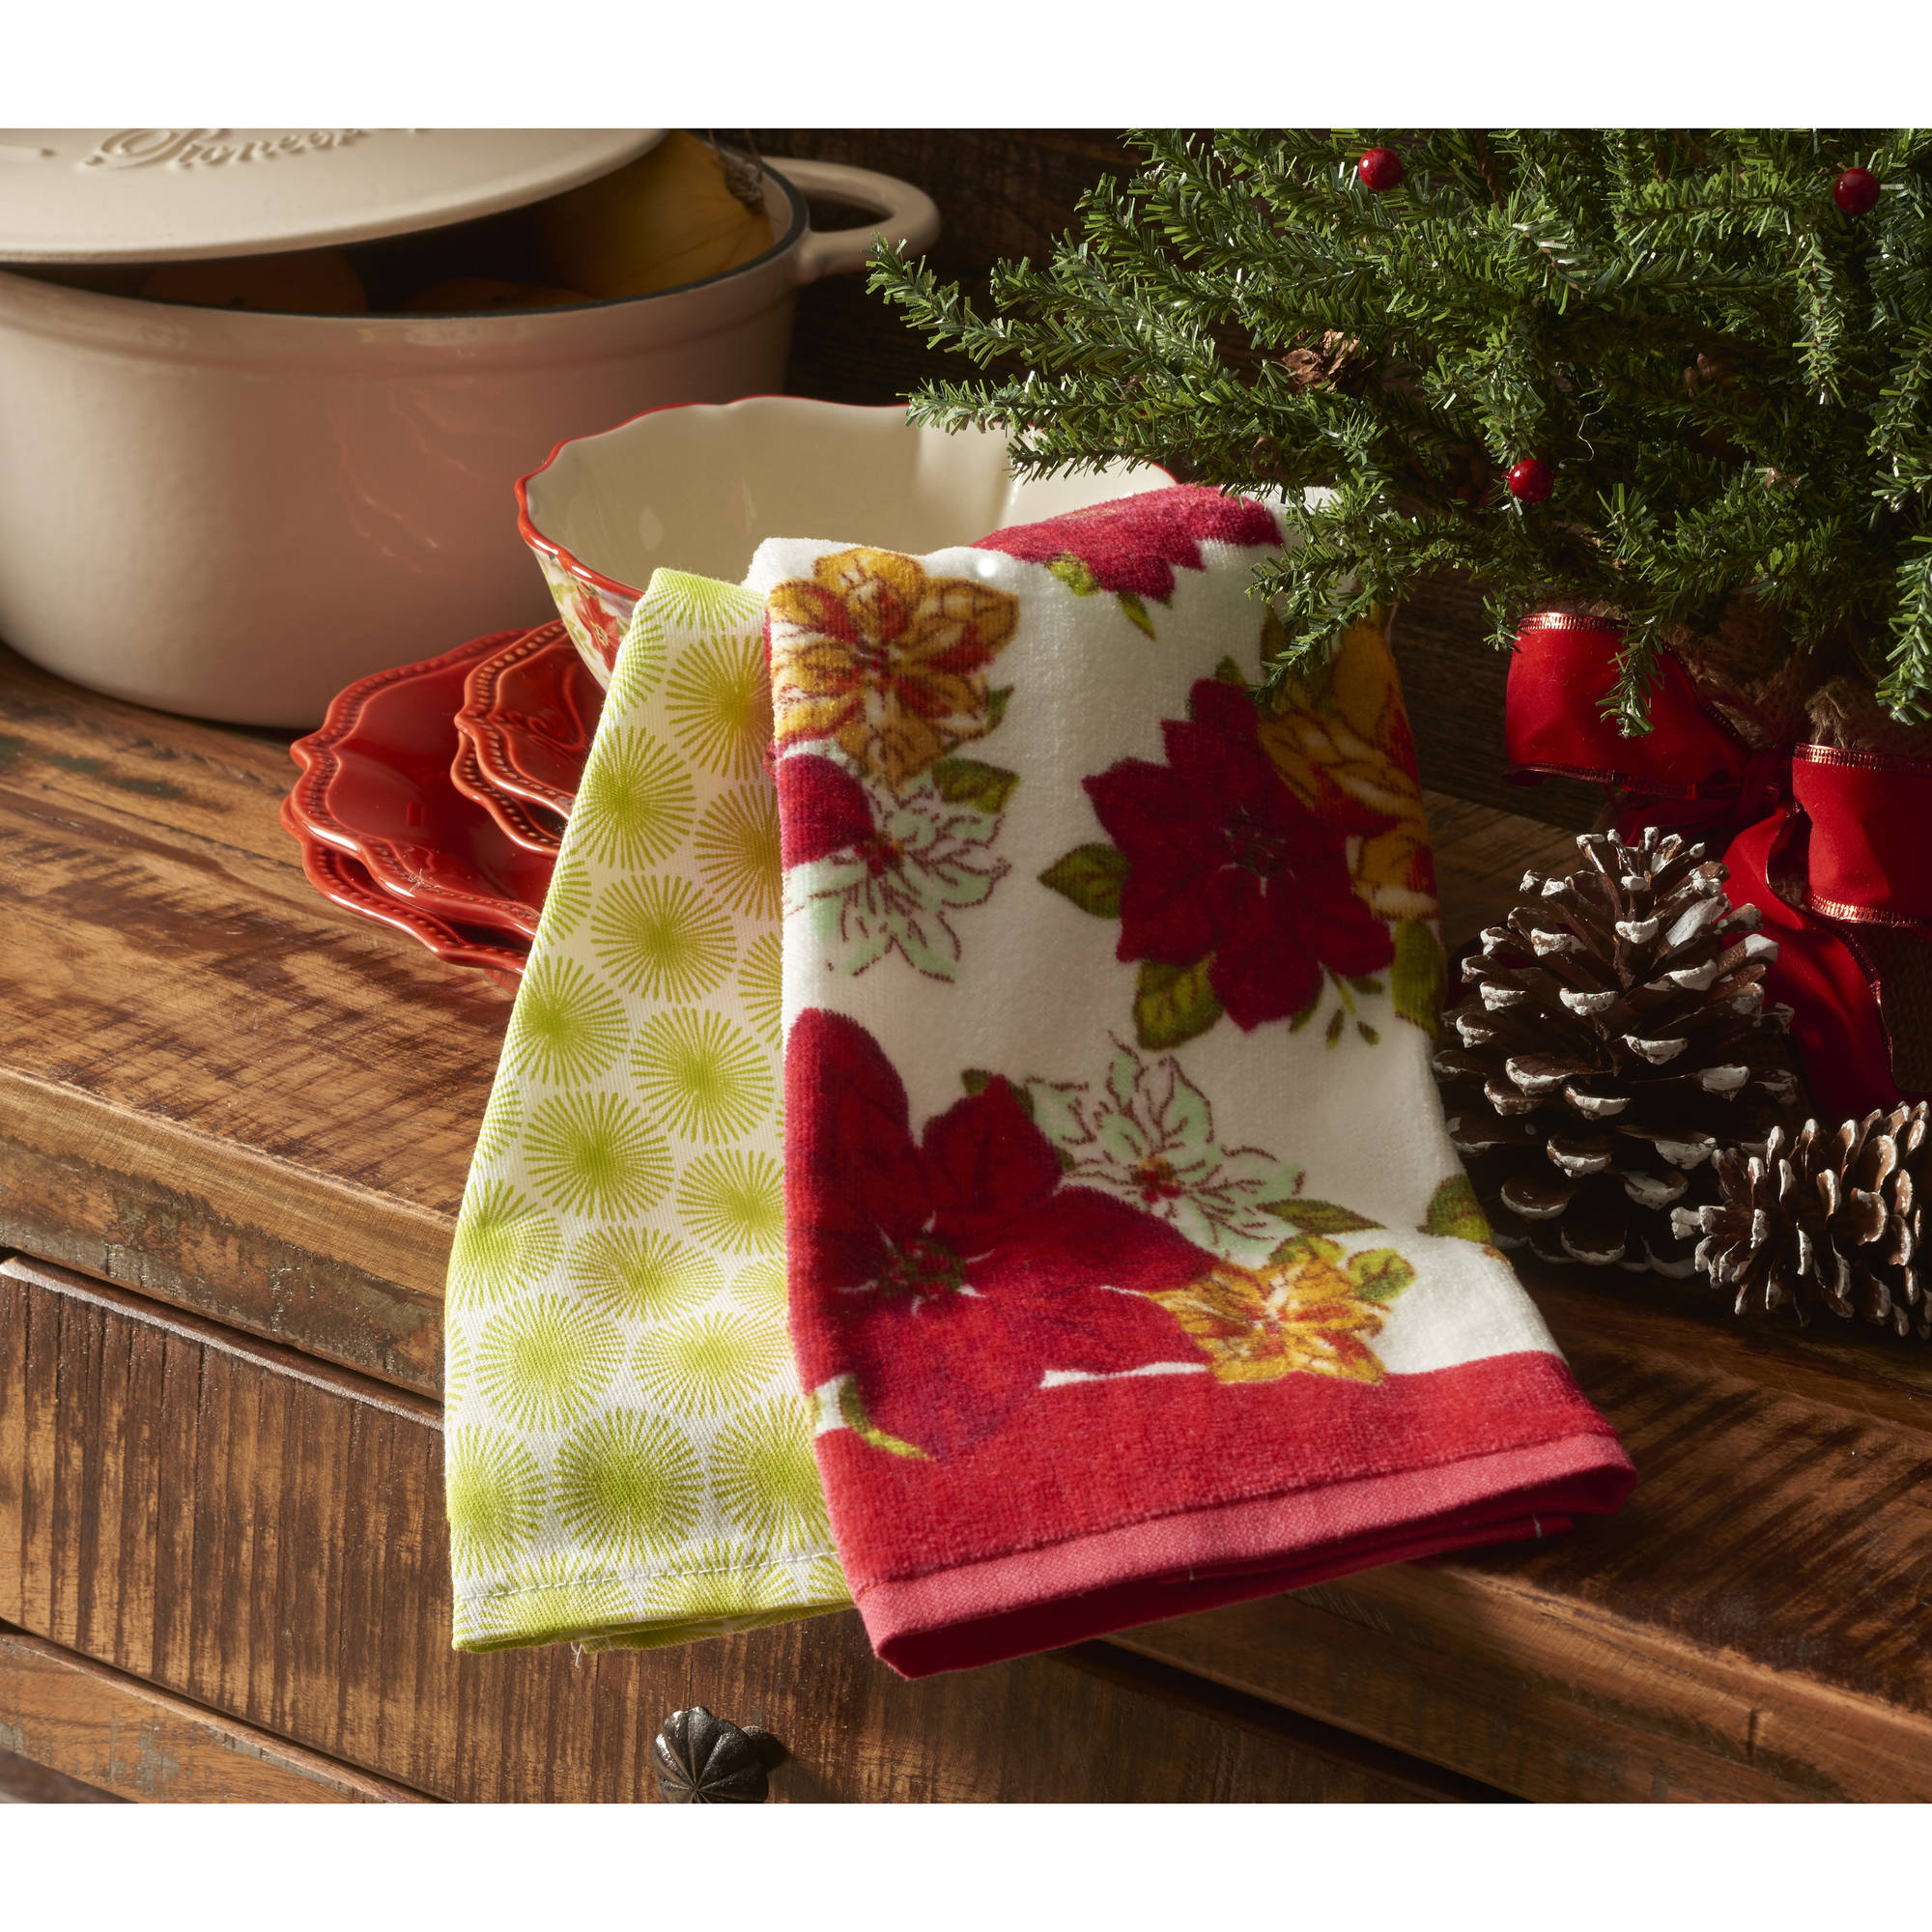 The Pioneer Woman Holiday Watercolor Poinsettia Kitchen Towel 4-Pack Set, Multi-Color